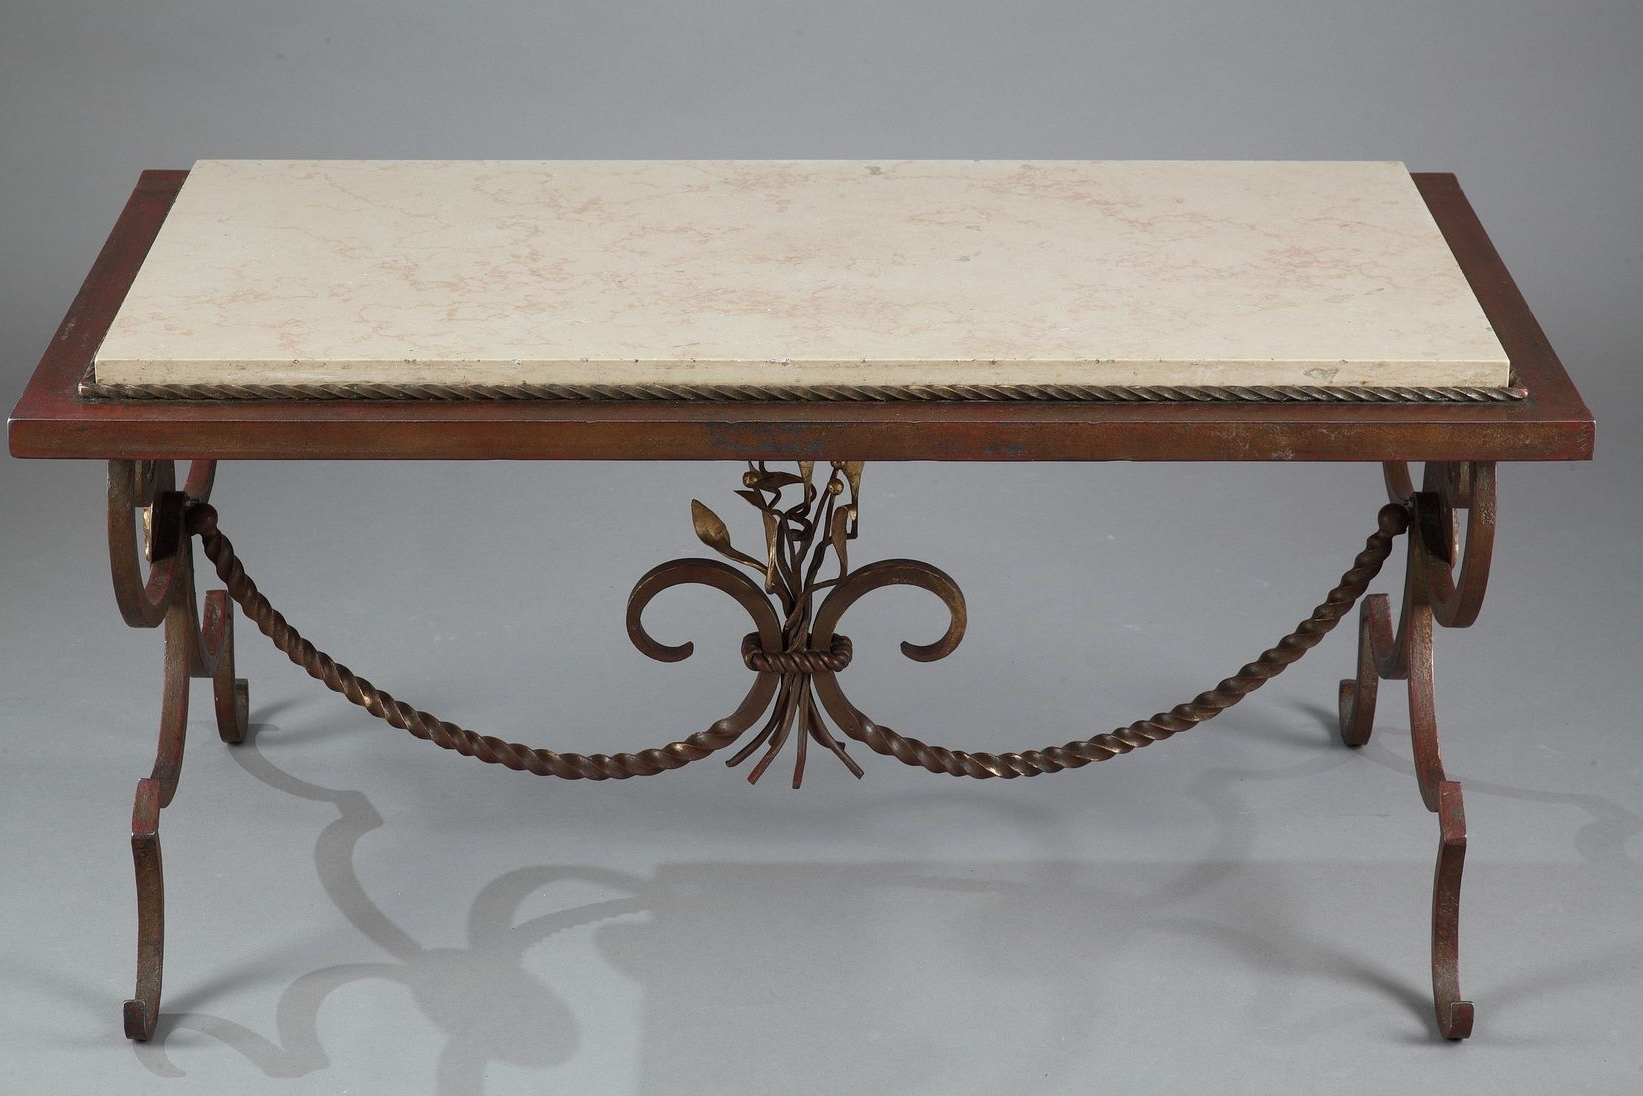 Trendy Iron Marble Coffee Tables For Gilded Wrought Iron & Marble Coffee Table, 1950s For Sale At Pamono (View 8 of 20)